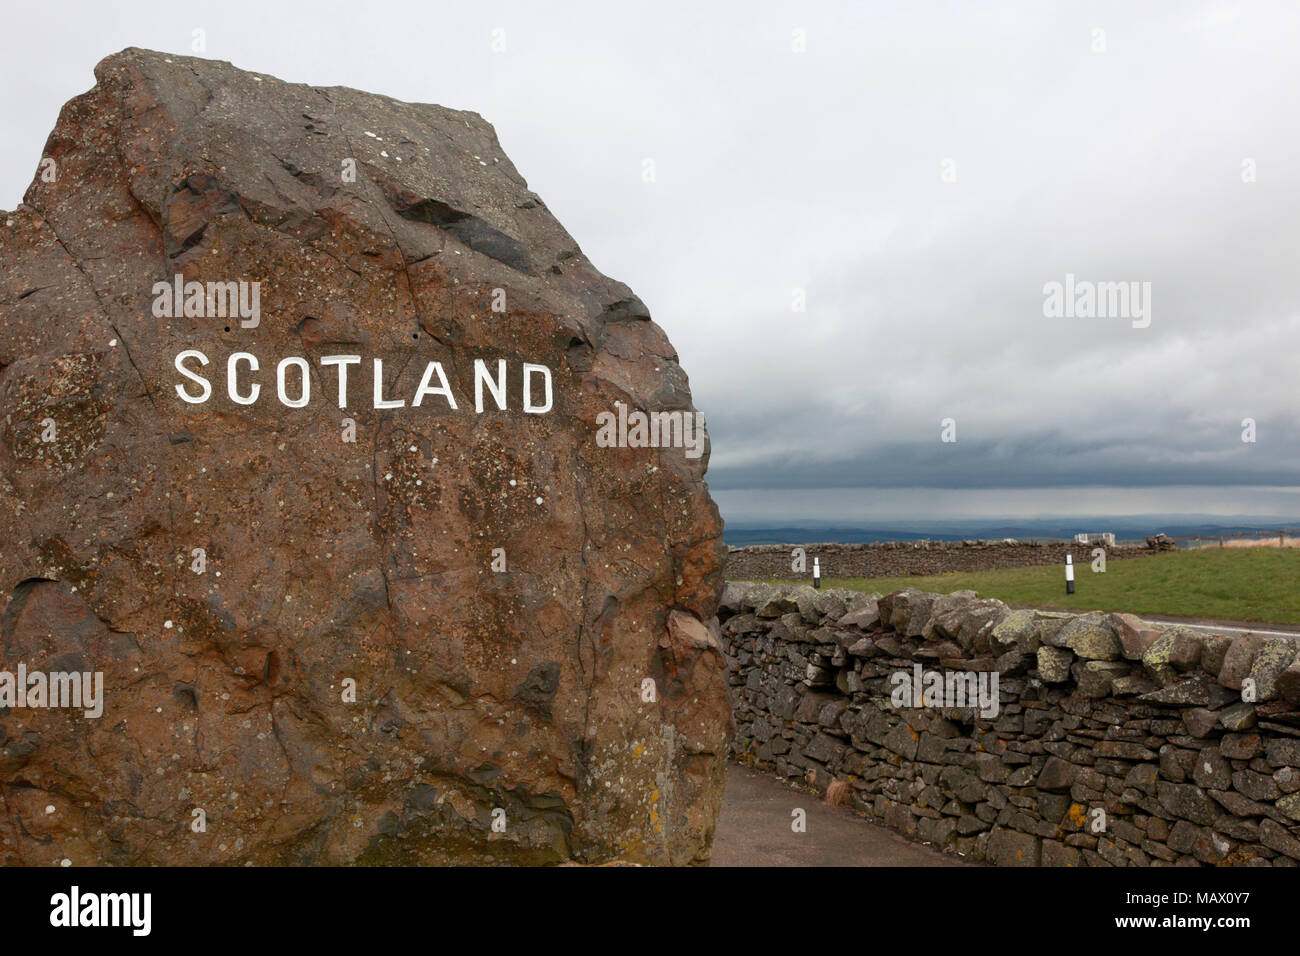 The border between Scotland and England at Carter Bar on the A68 between Northumberland and Roxburghshire - Stock Image